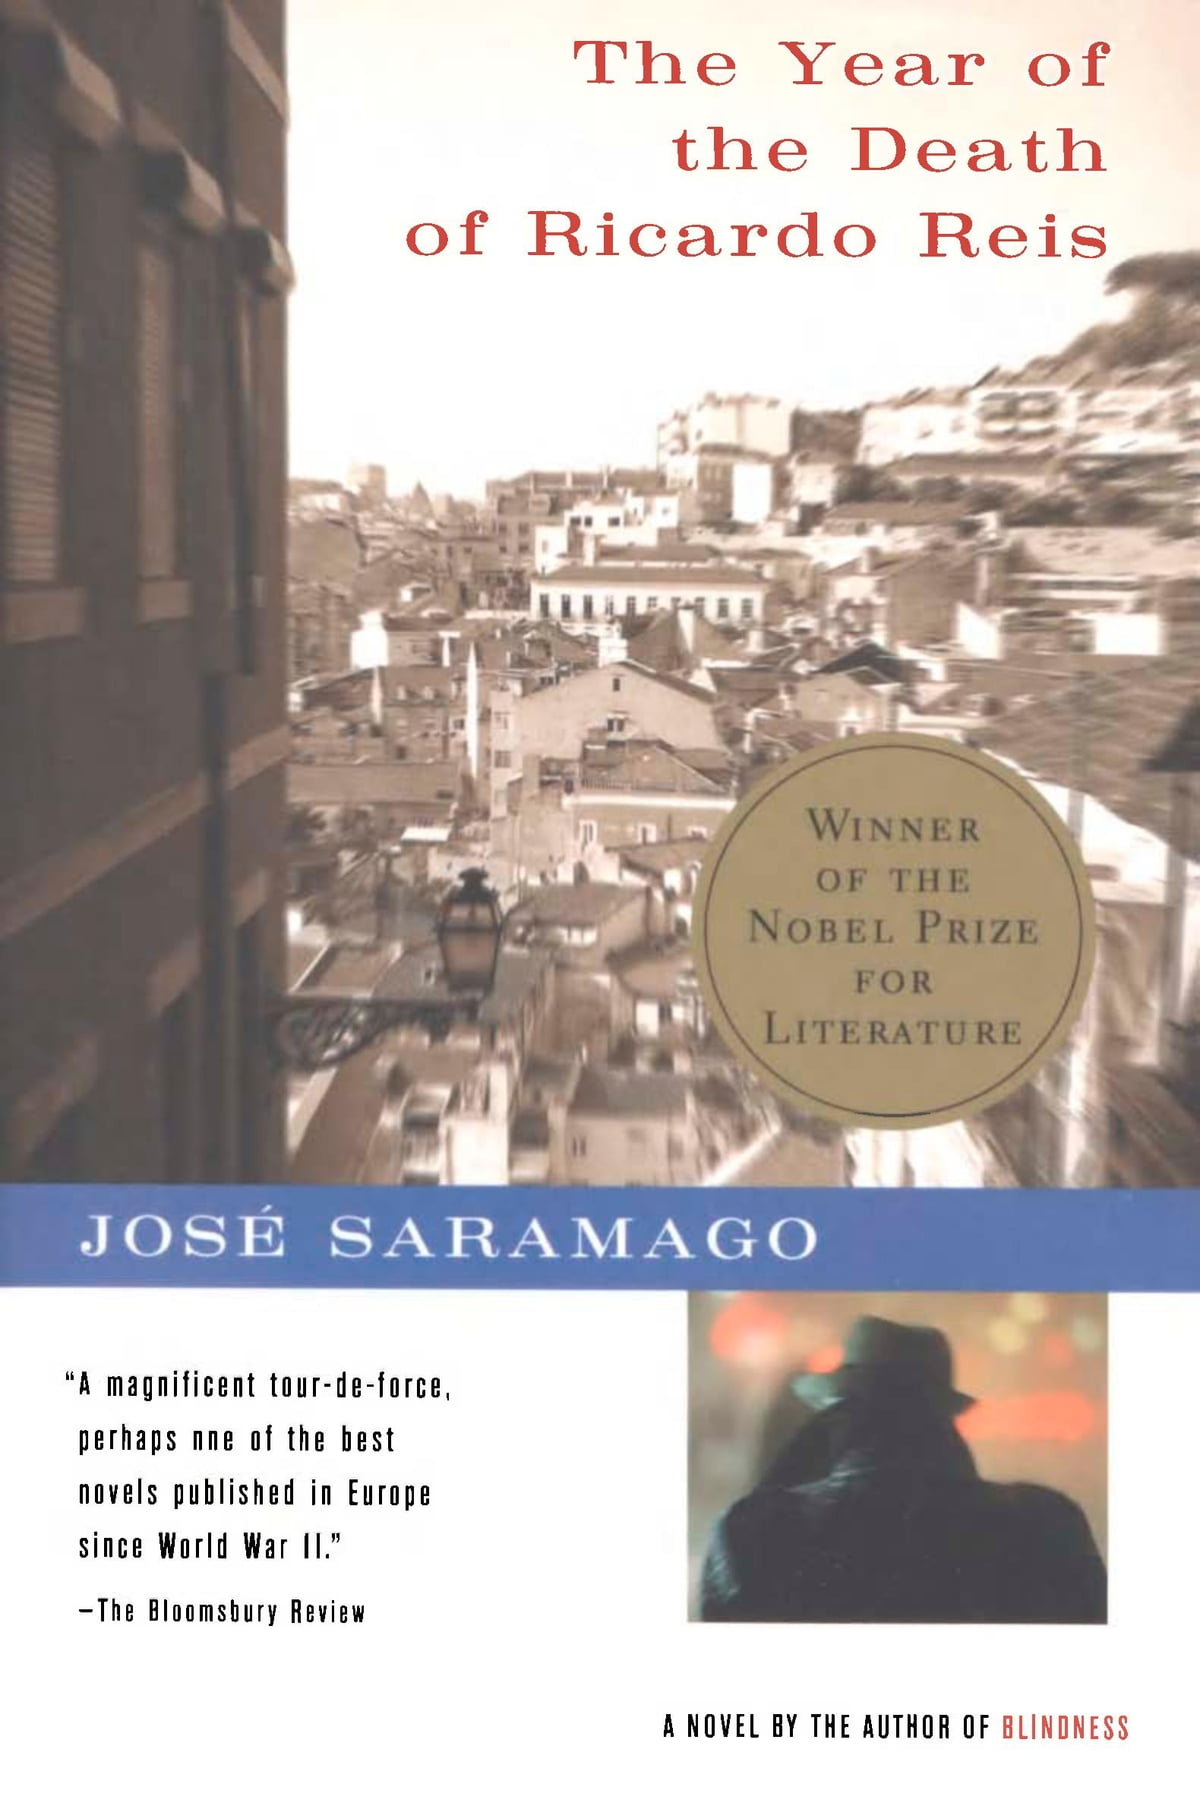 The year of the death of ricardo reis ebook by jos saramago the year of the death of ricardo reis ebook by jos saramago 9780547546926 rakuten kobo fandeluxe Ebook collections